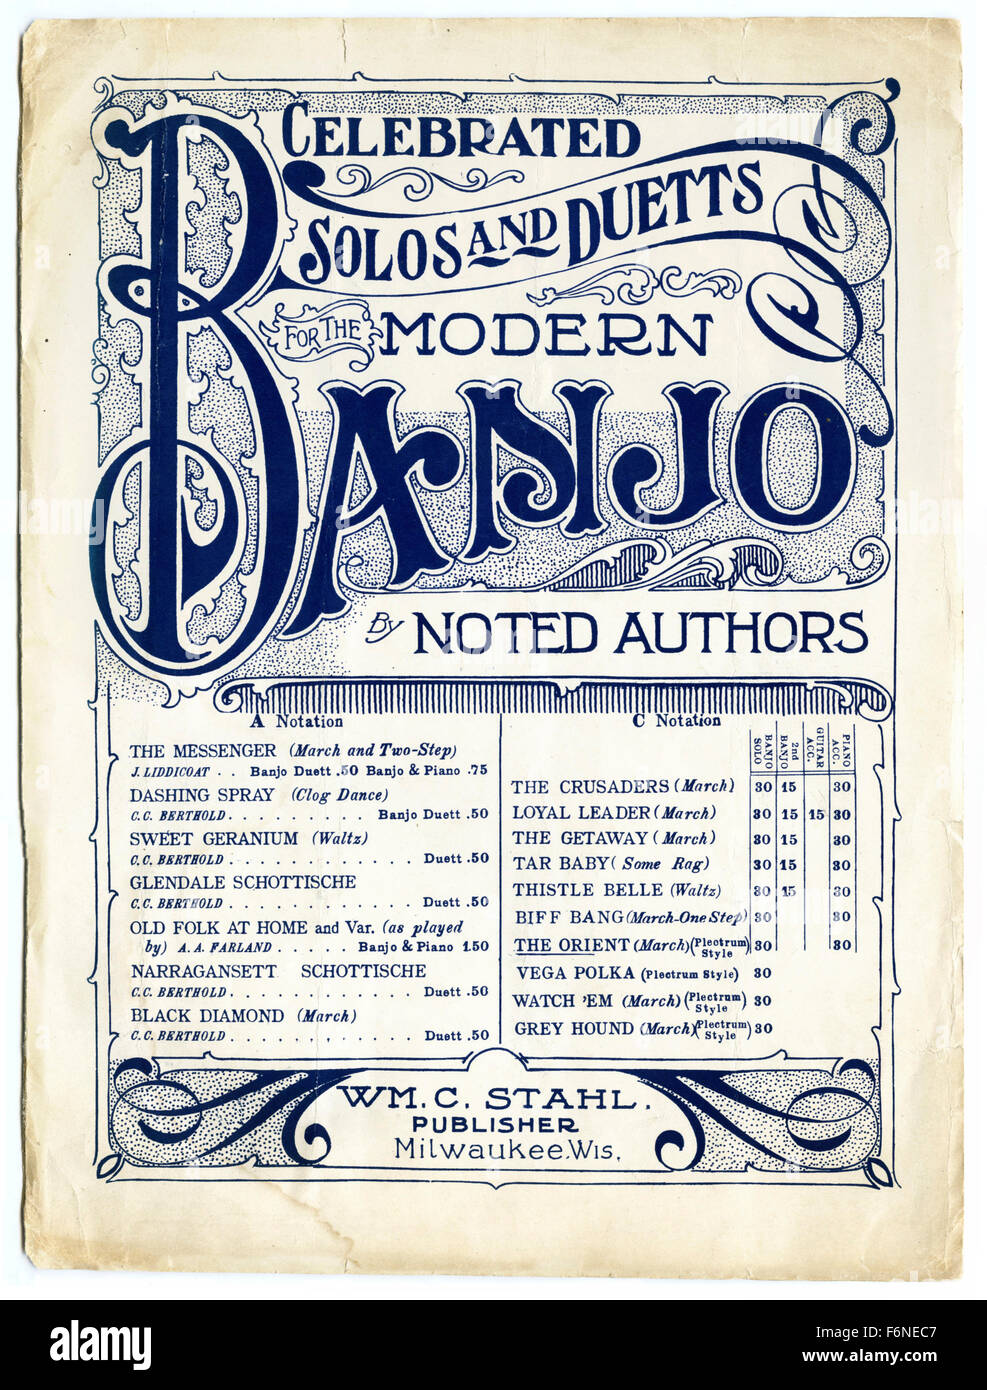 Celebrated Solos and Duetts for the Modern Banjo by Noted Authors music book - Stock Image